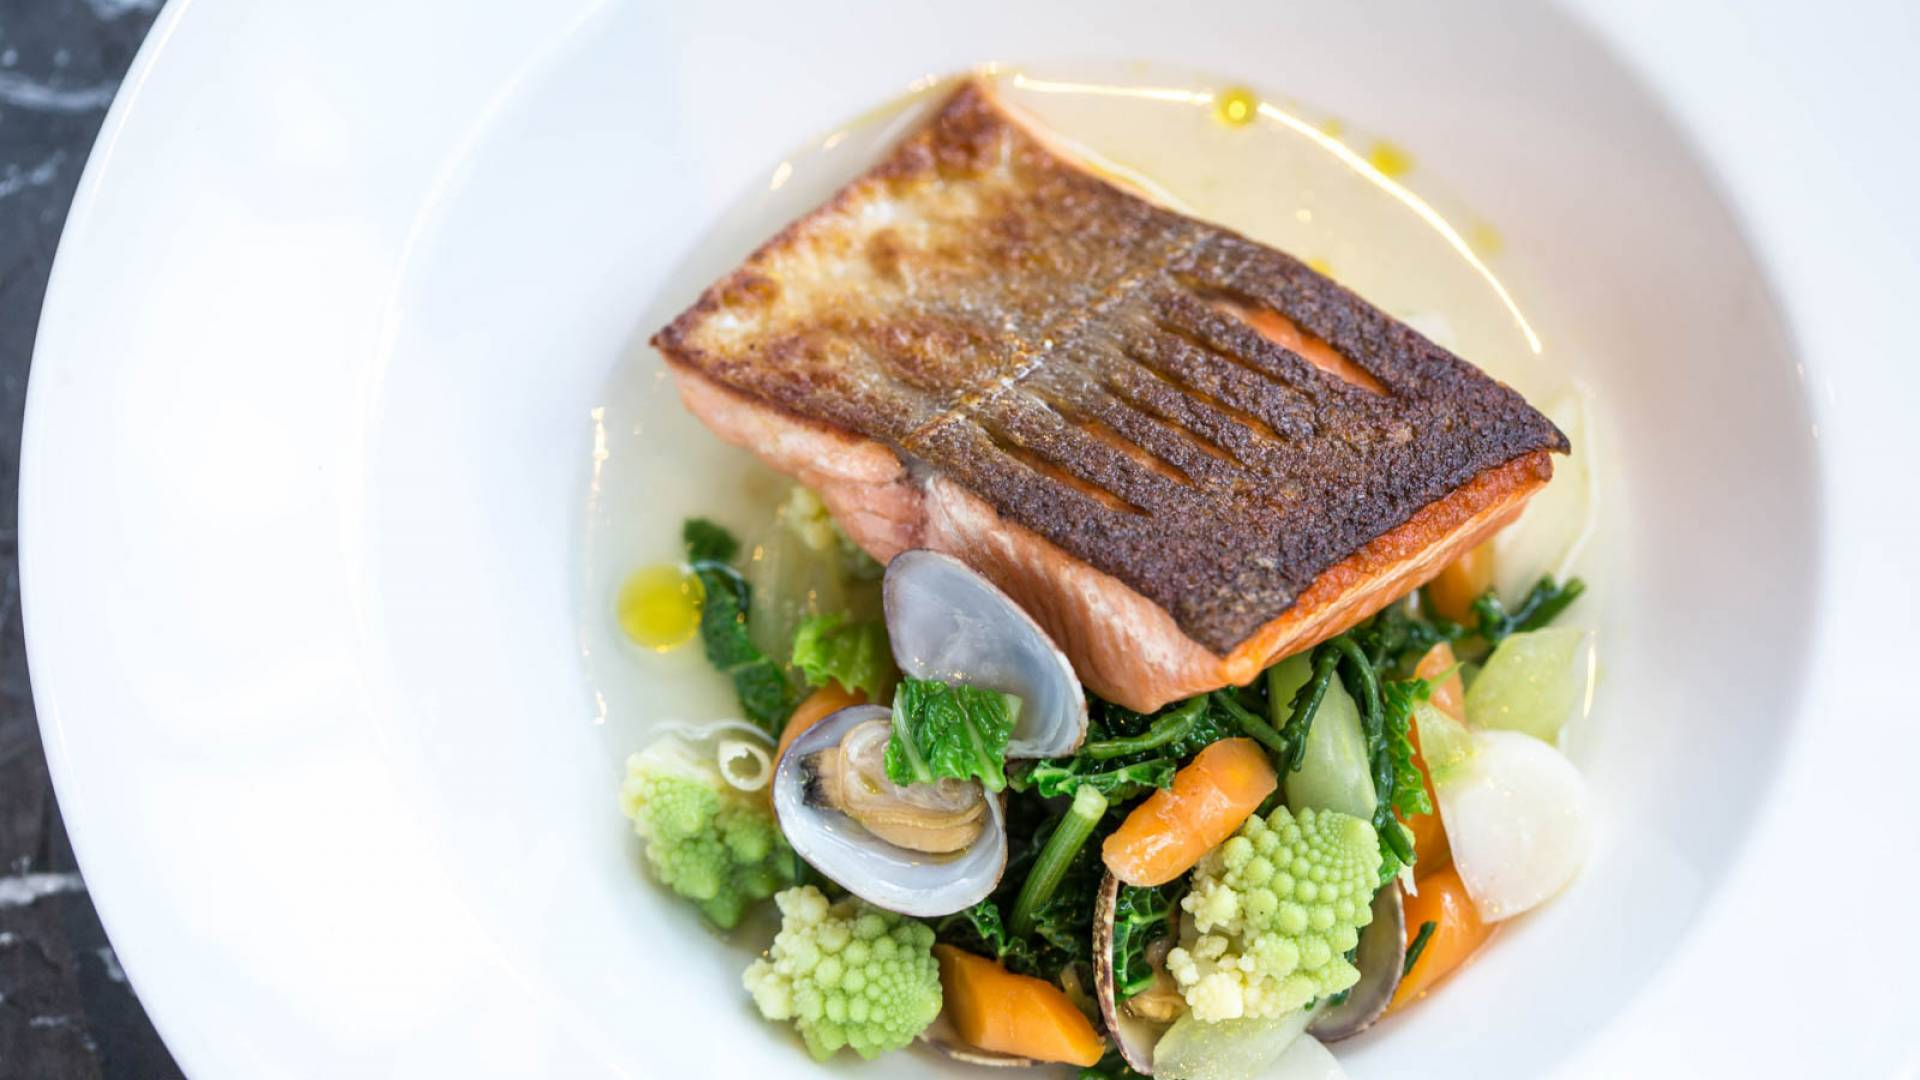 6 Roasted sea trout winter vegetables samphire palourde clams aromatic broth